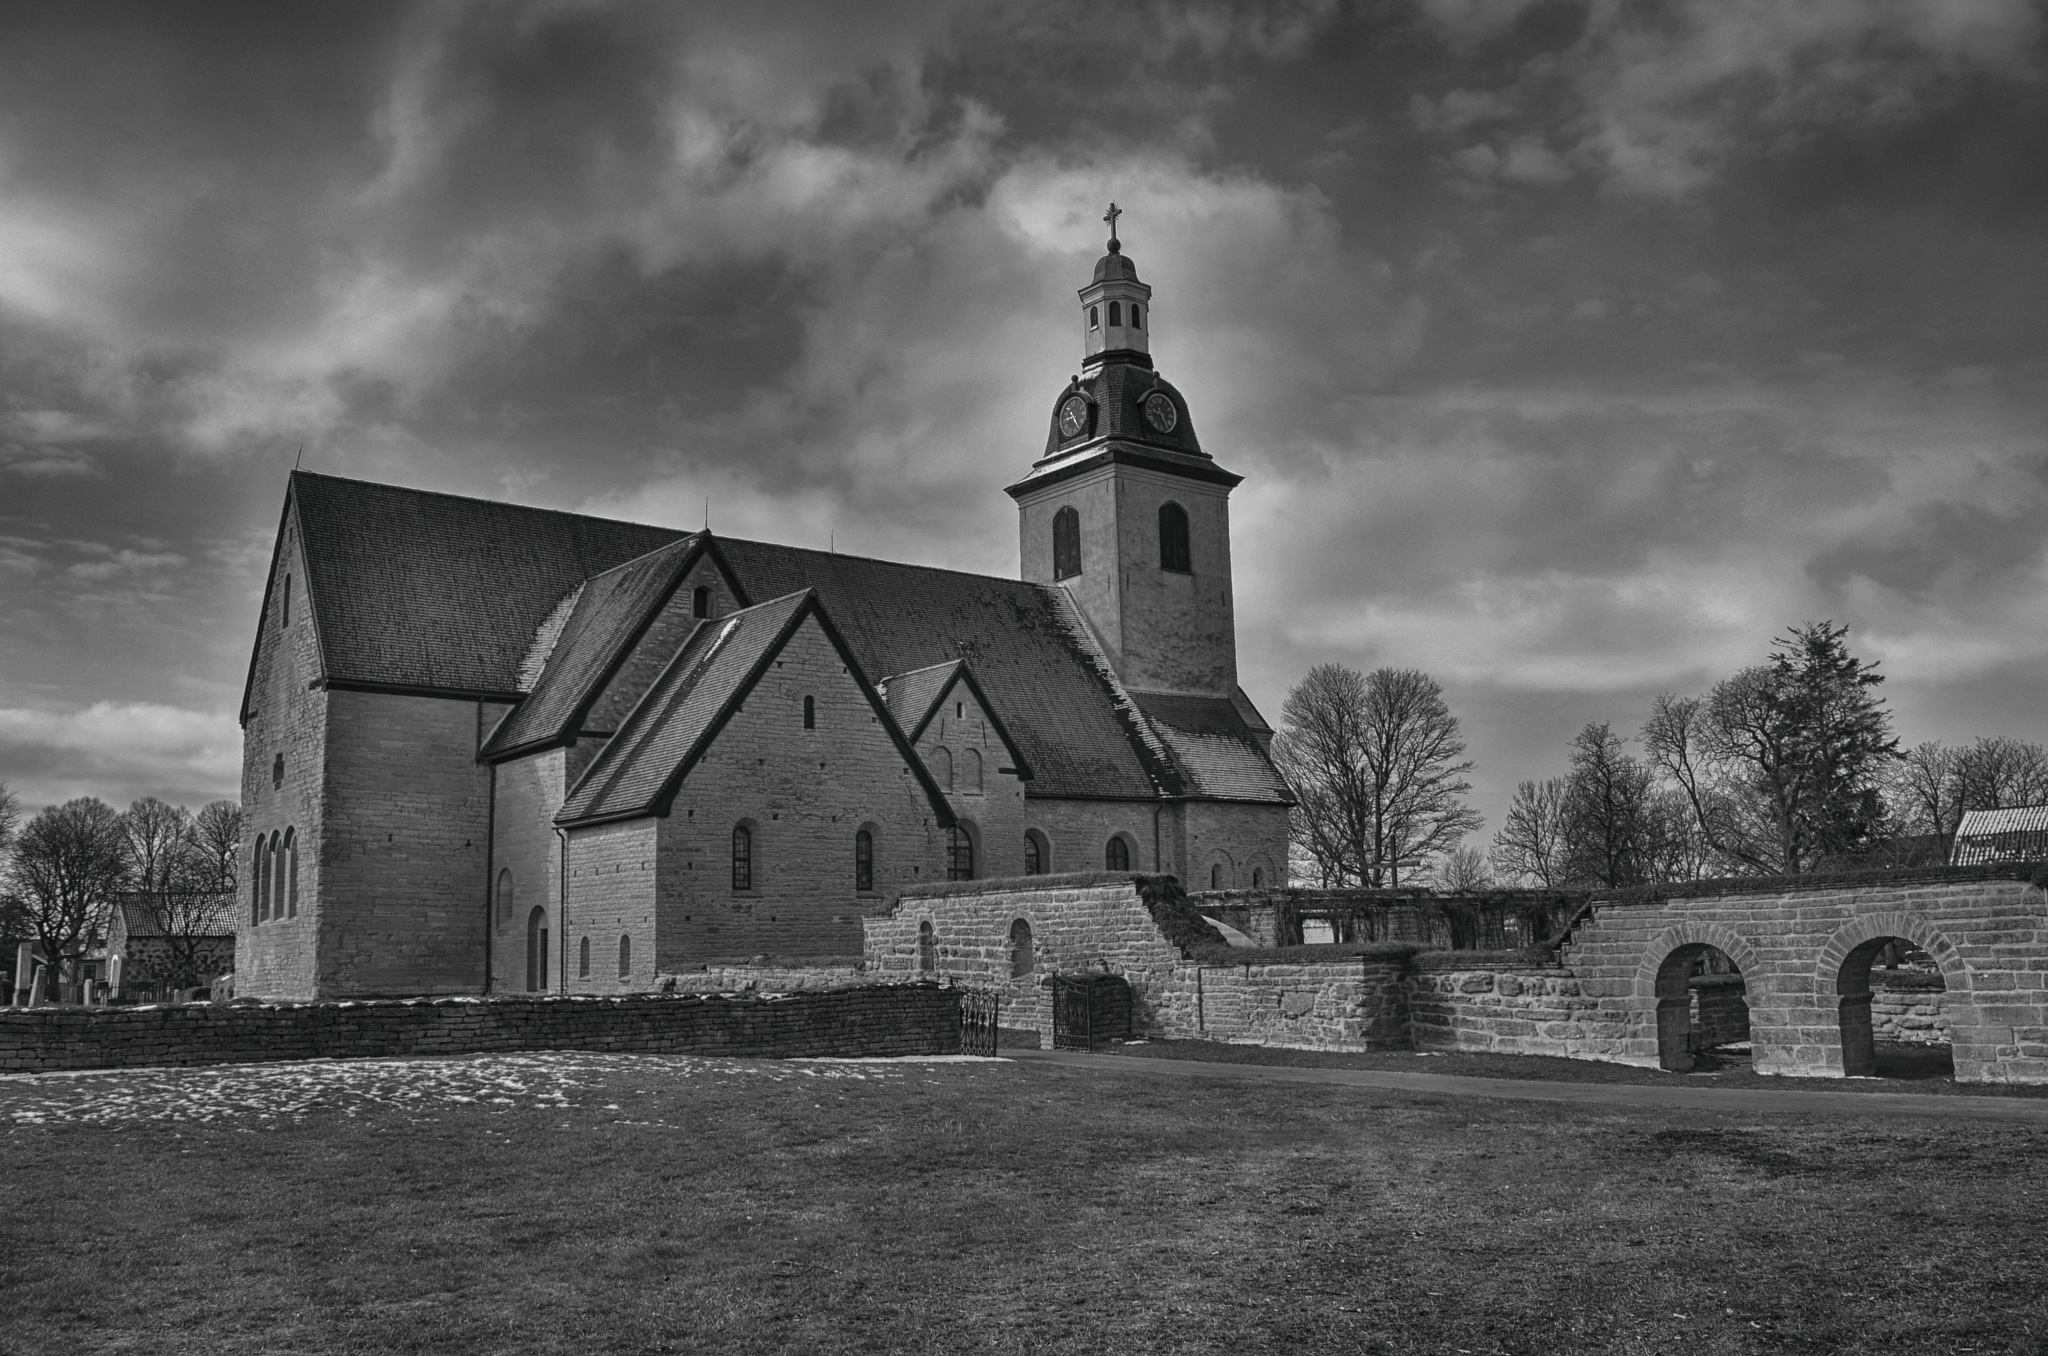 Vreta Kloster Church by rollepersson